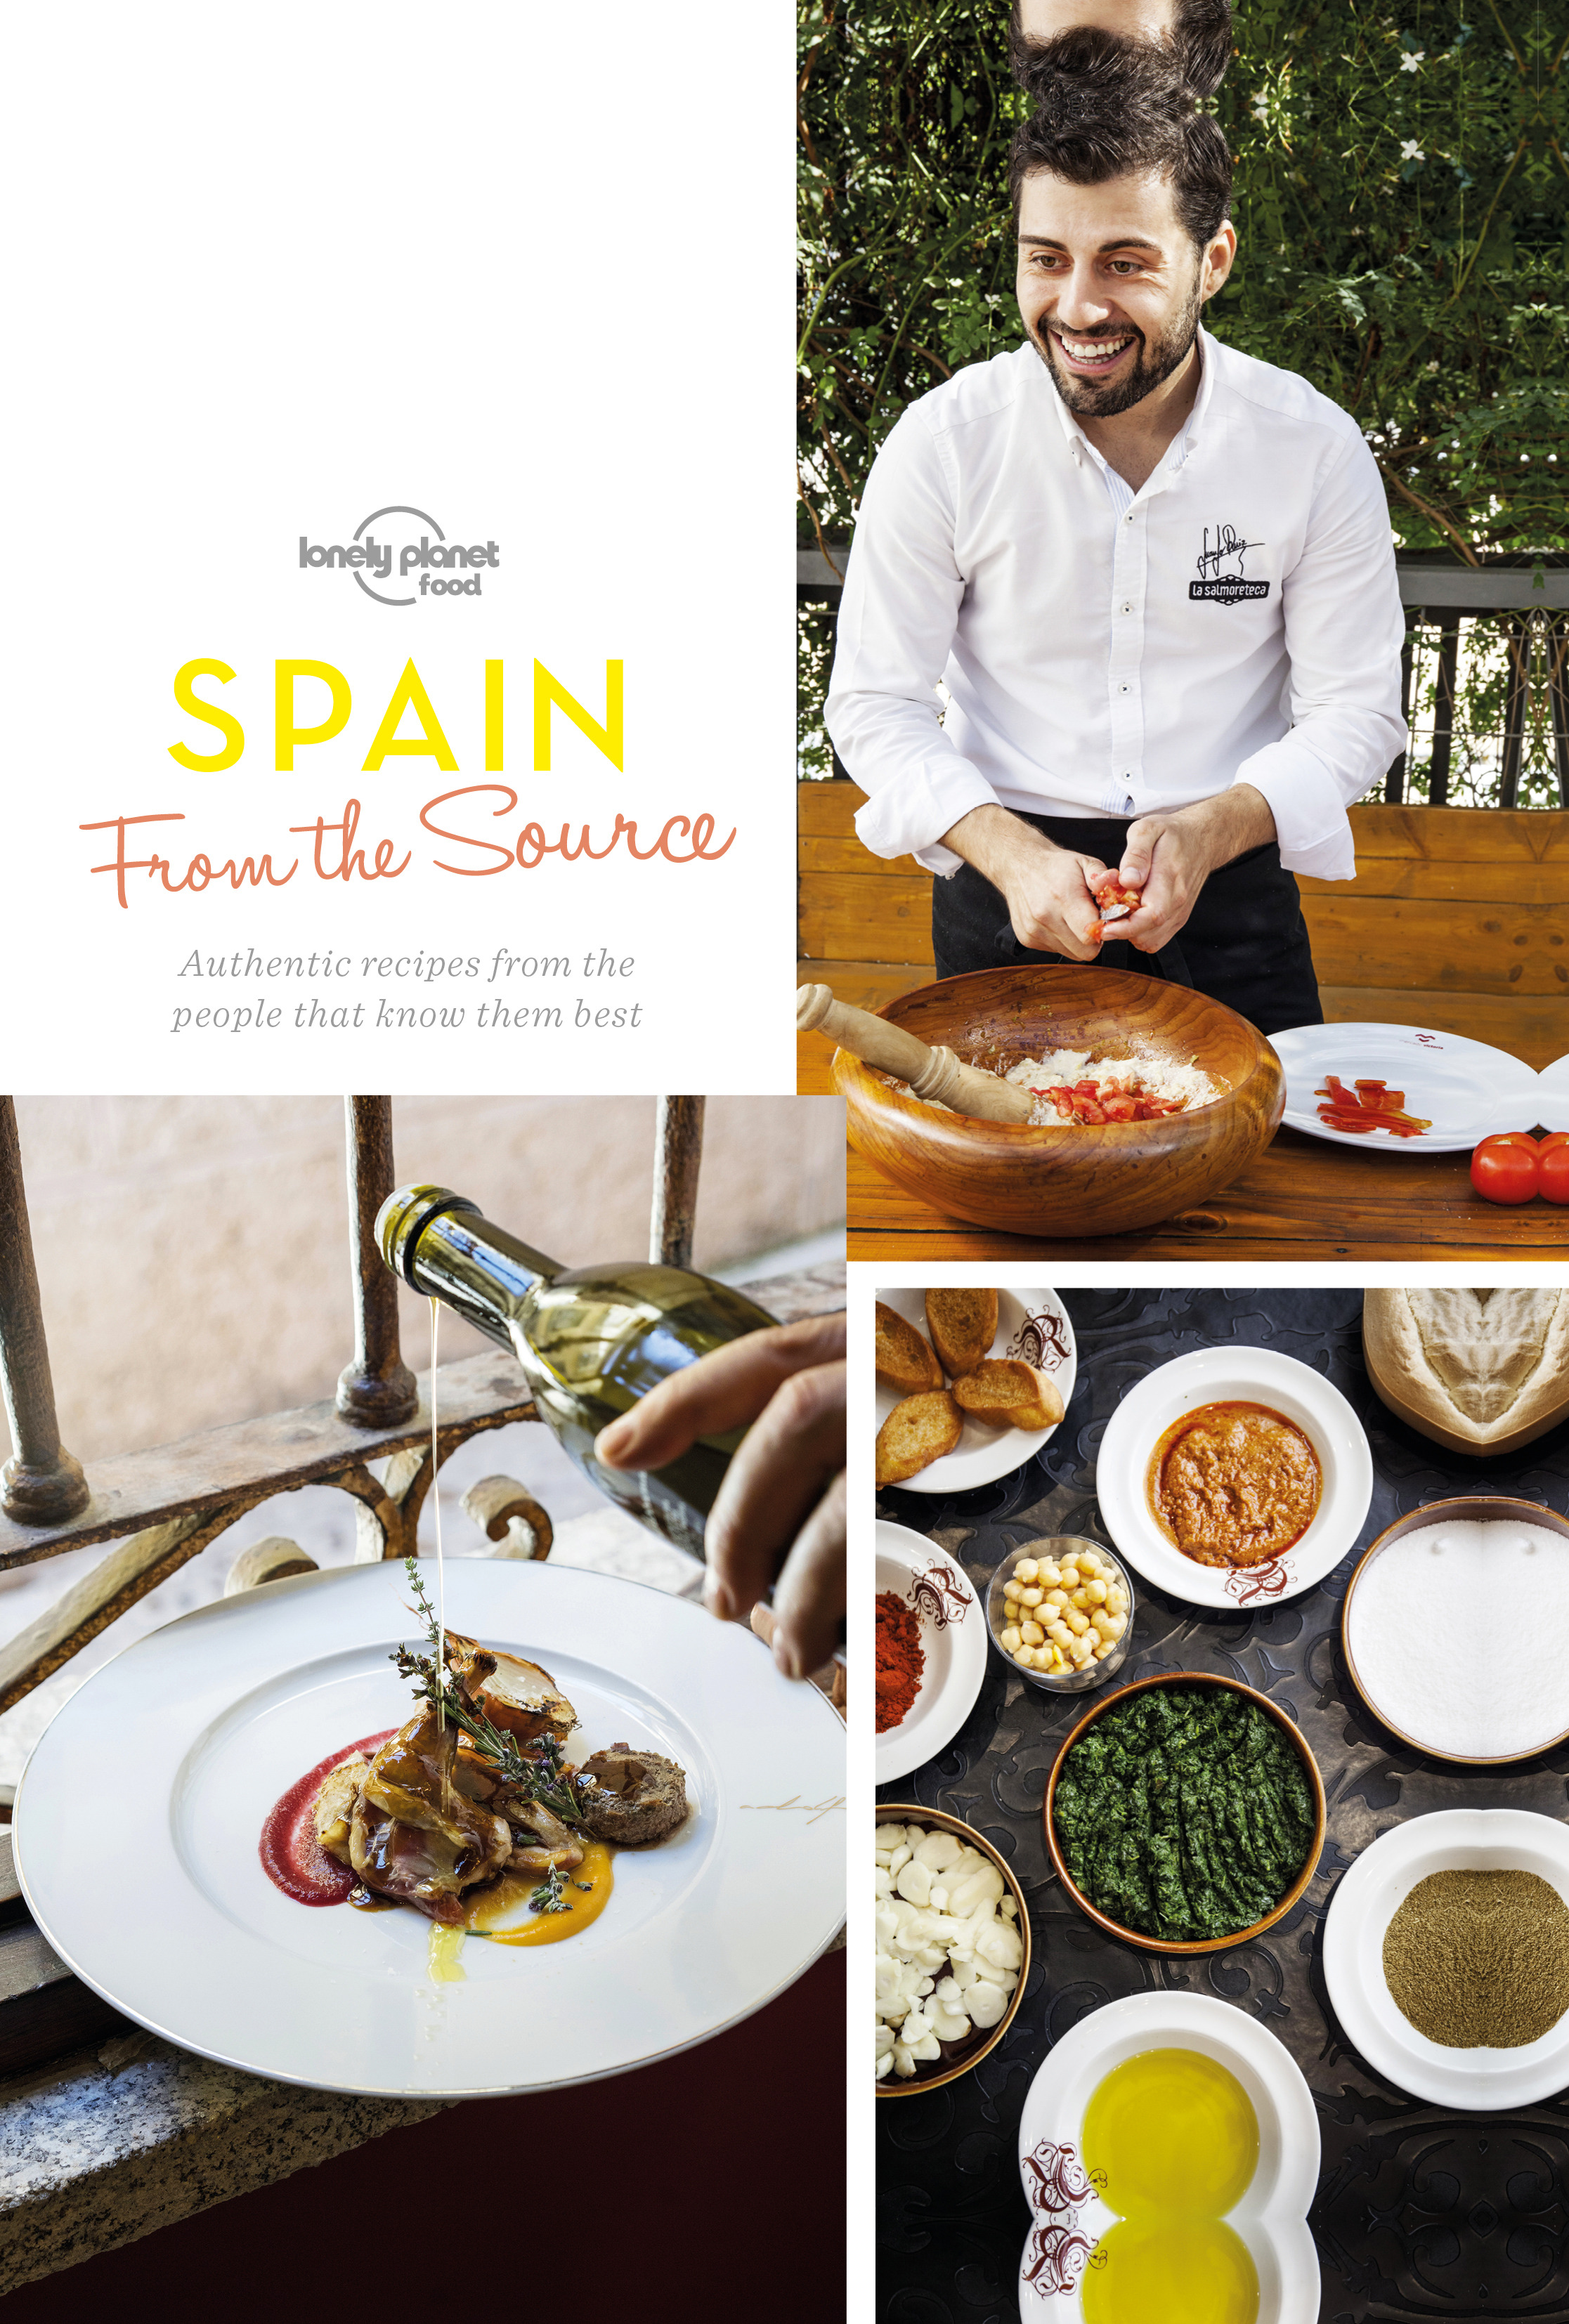 Food, Lonely Planet - From the Source - Spain: Spain's Most Authentic Recipes From the People That Know Them Best, ebook